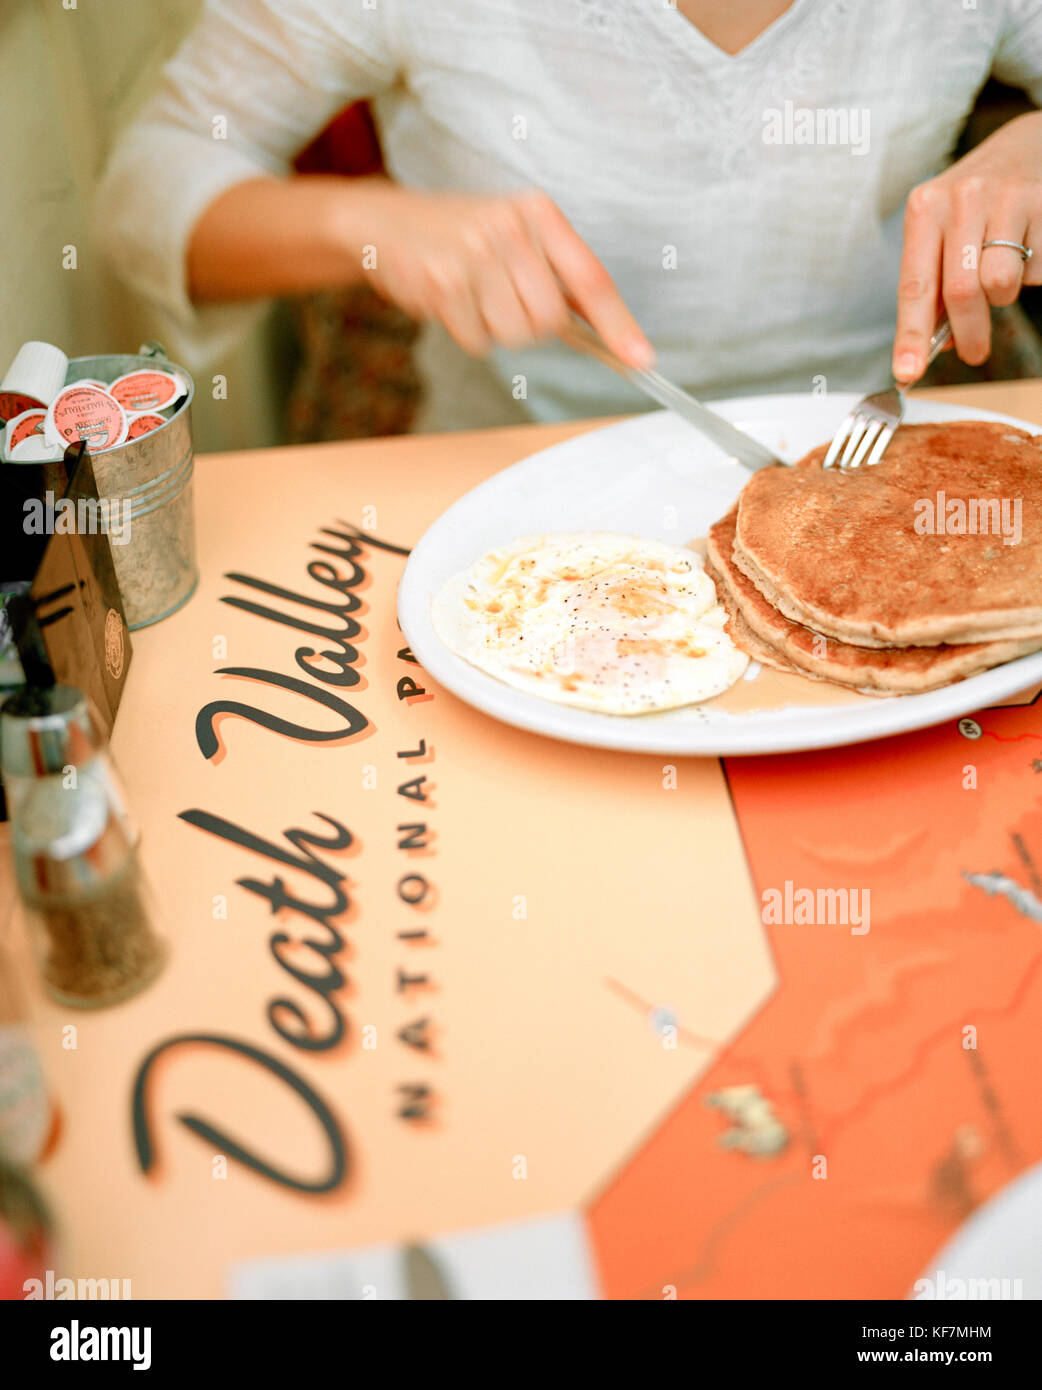 USA, California, Death Valley, woman having breakfast, 49er Cafe, midsection - Stock Image